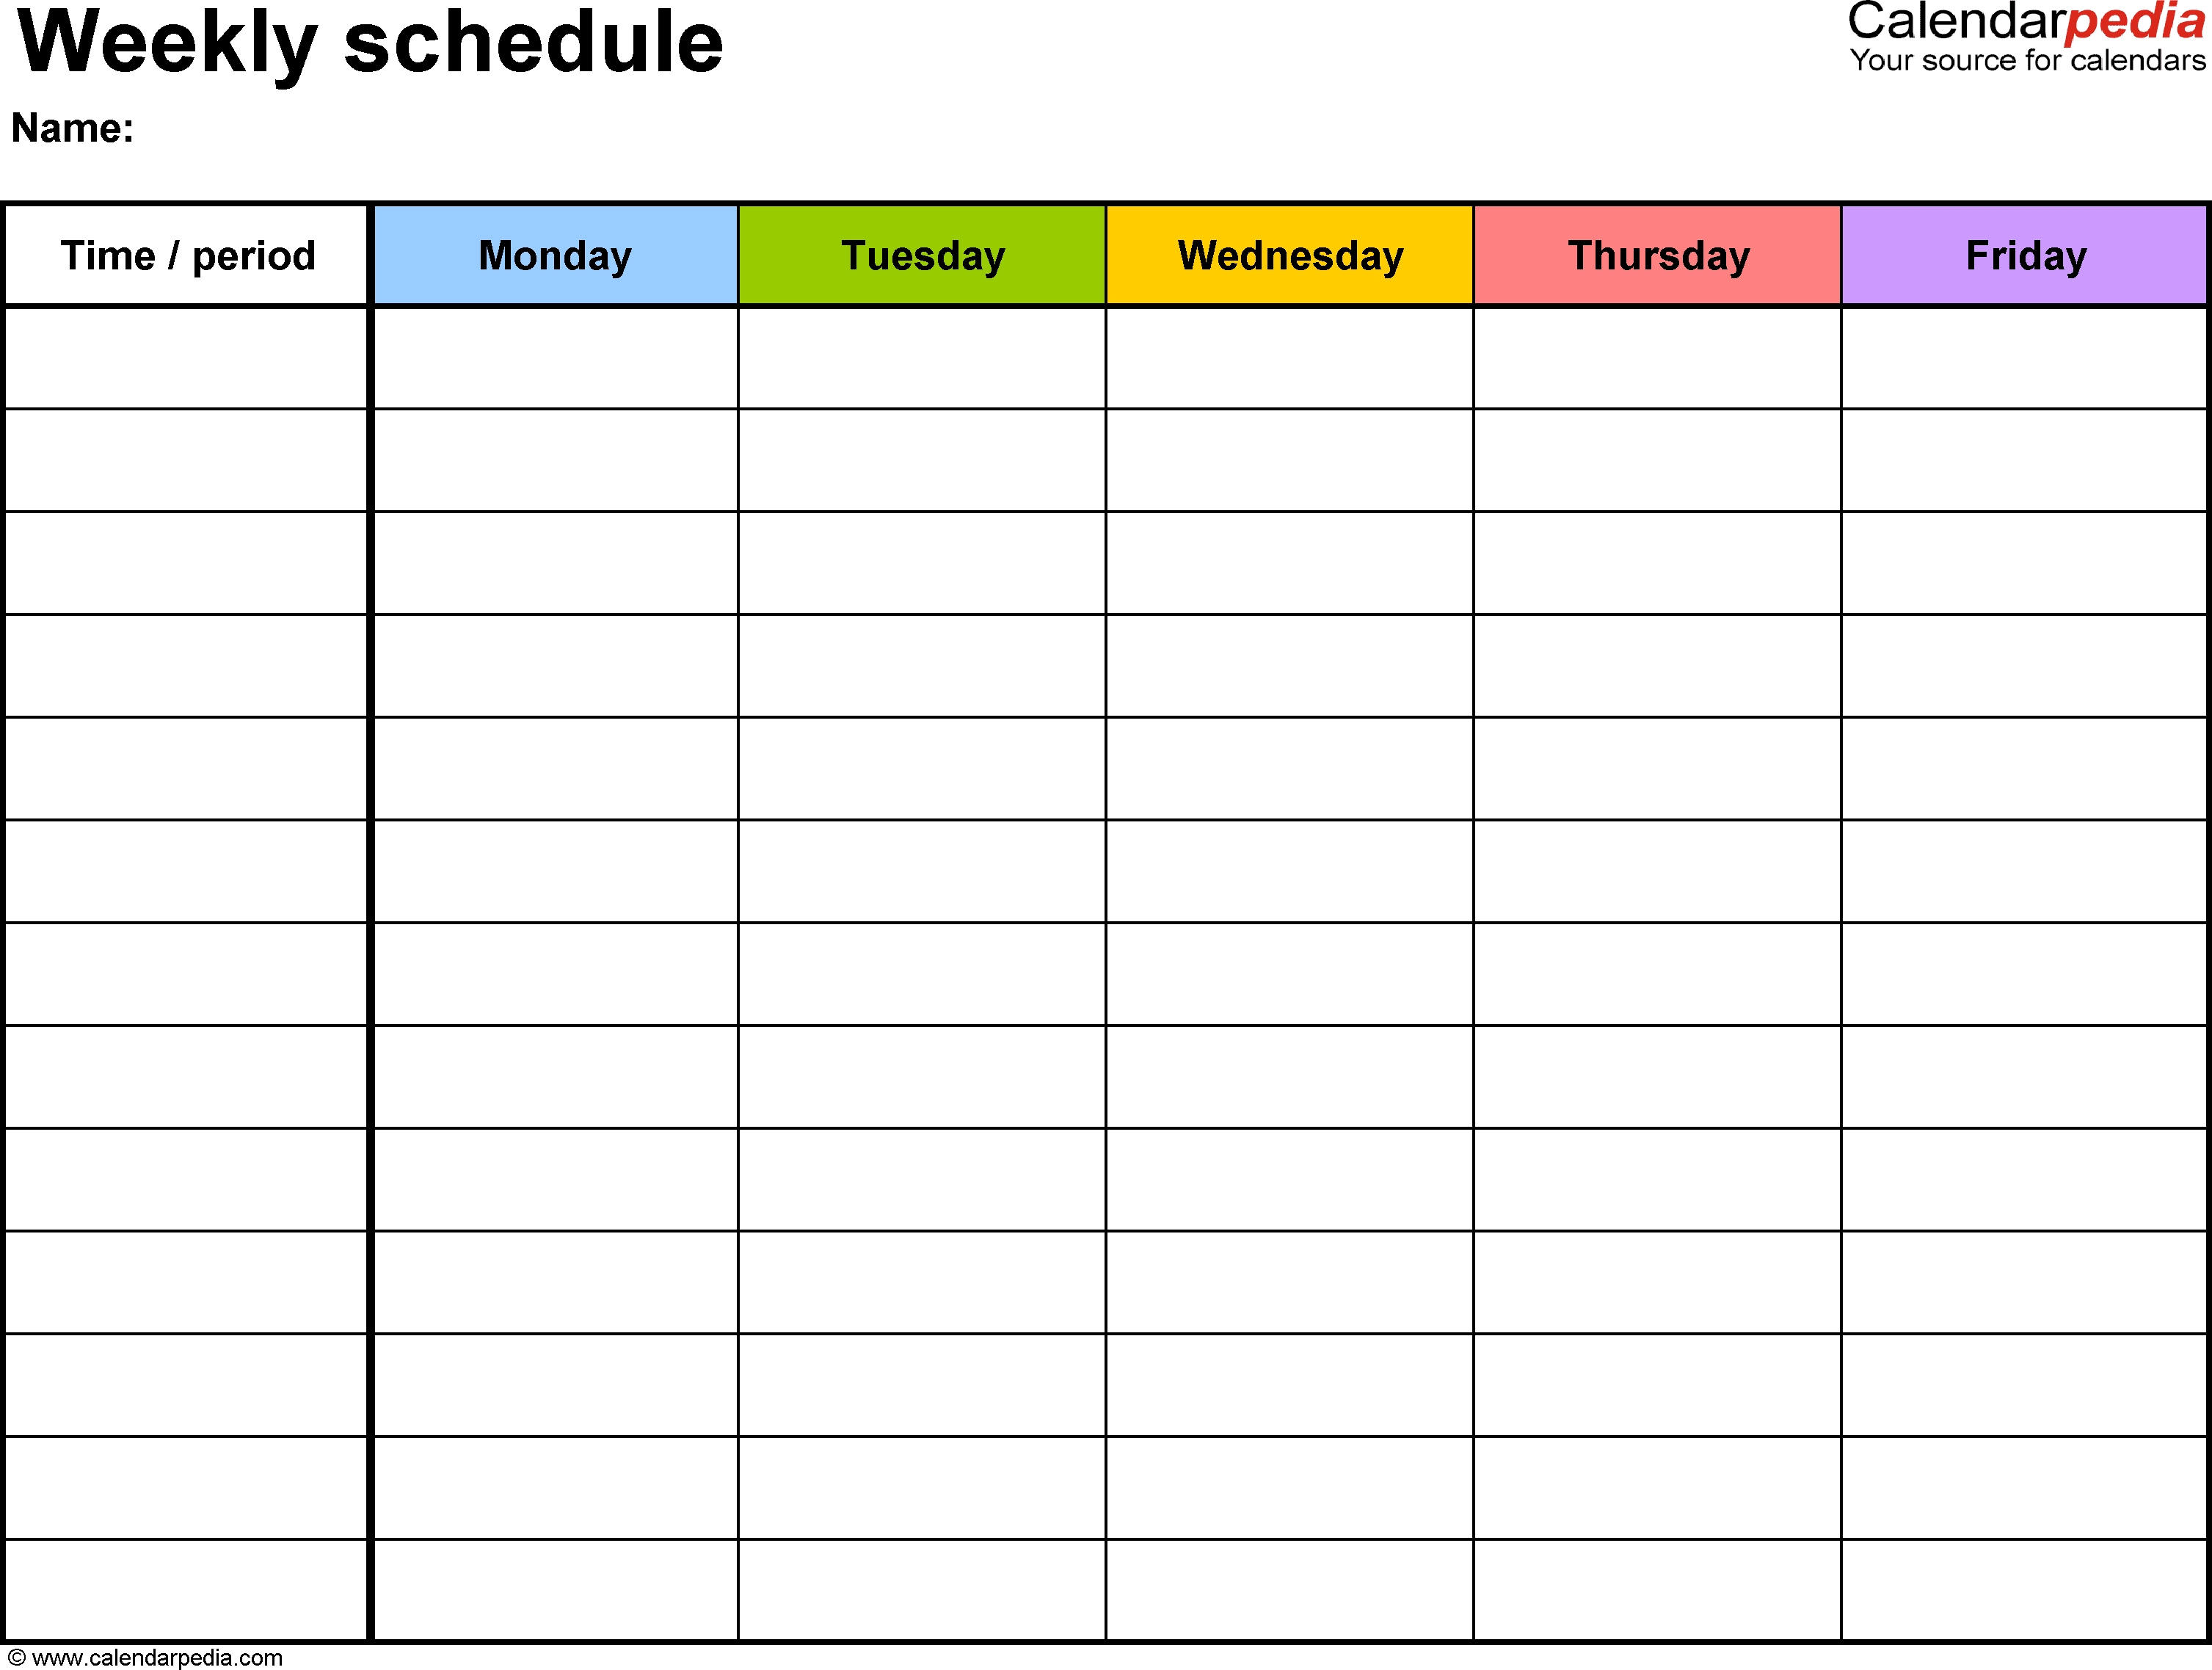 Free Weekly Schedule Templates For Word 18 Templates3abry